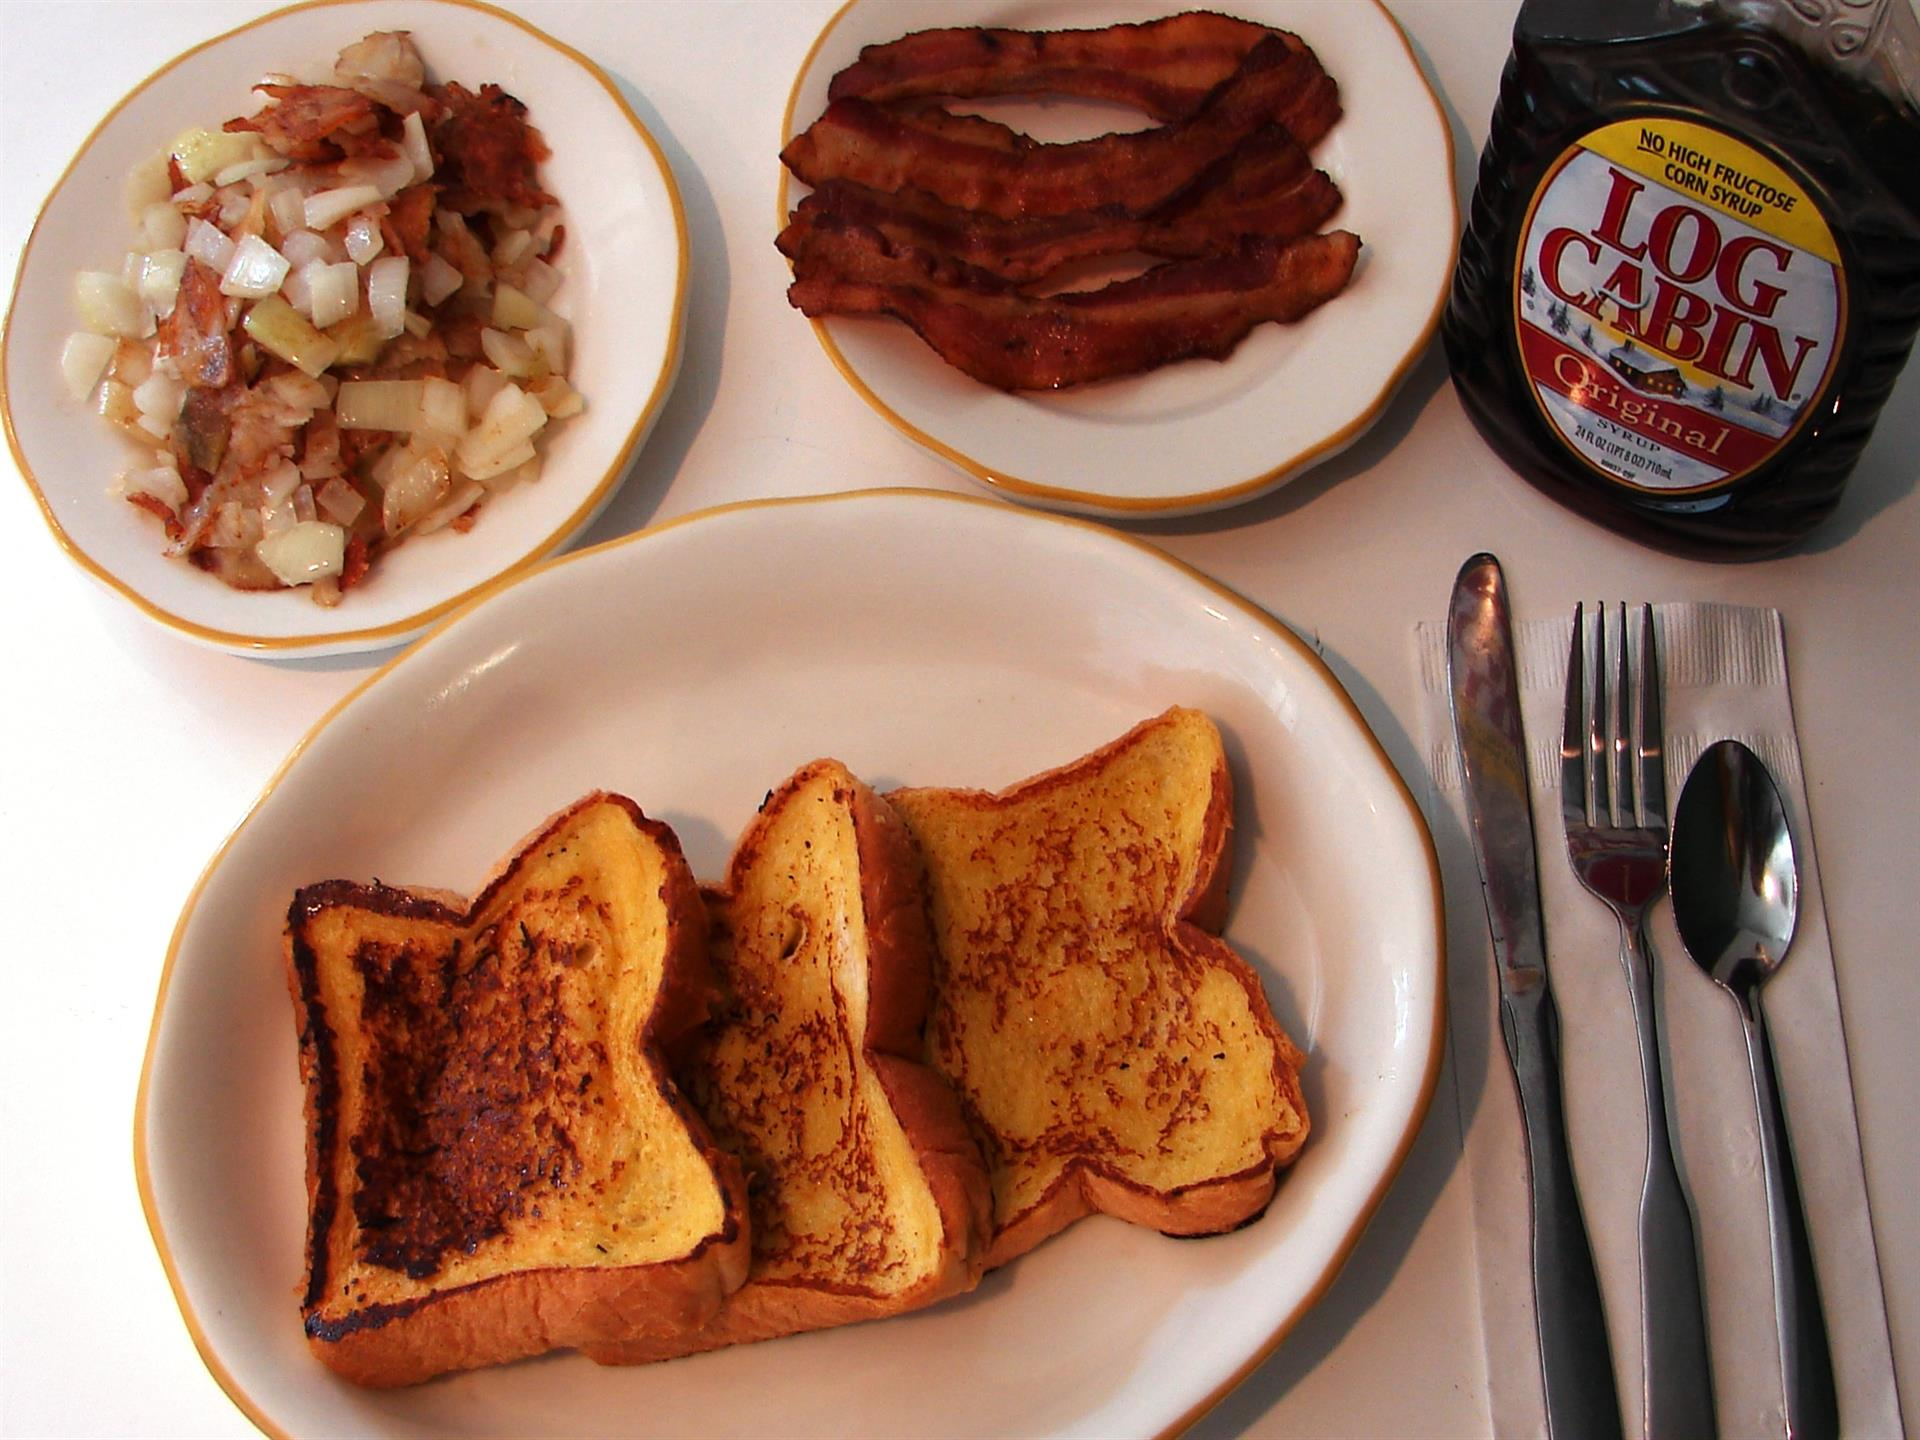 White table with plates of french toast, hash browns, bacon. Syrup and utensils on napkin.